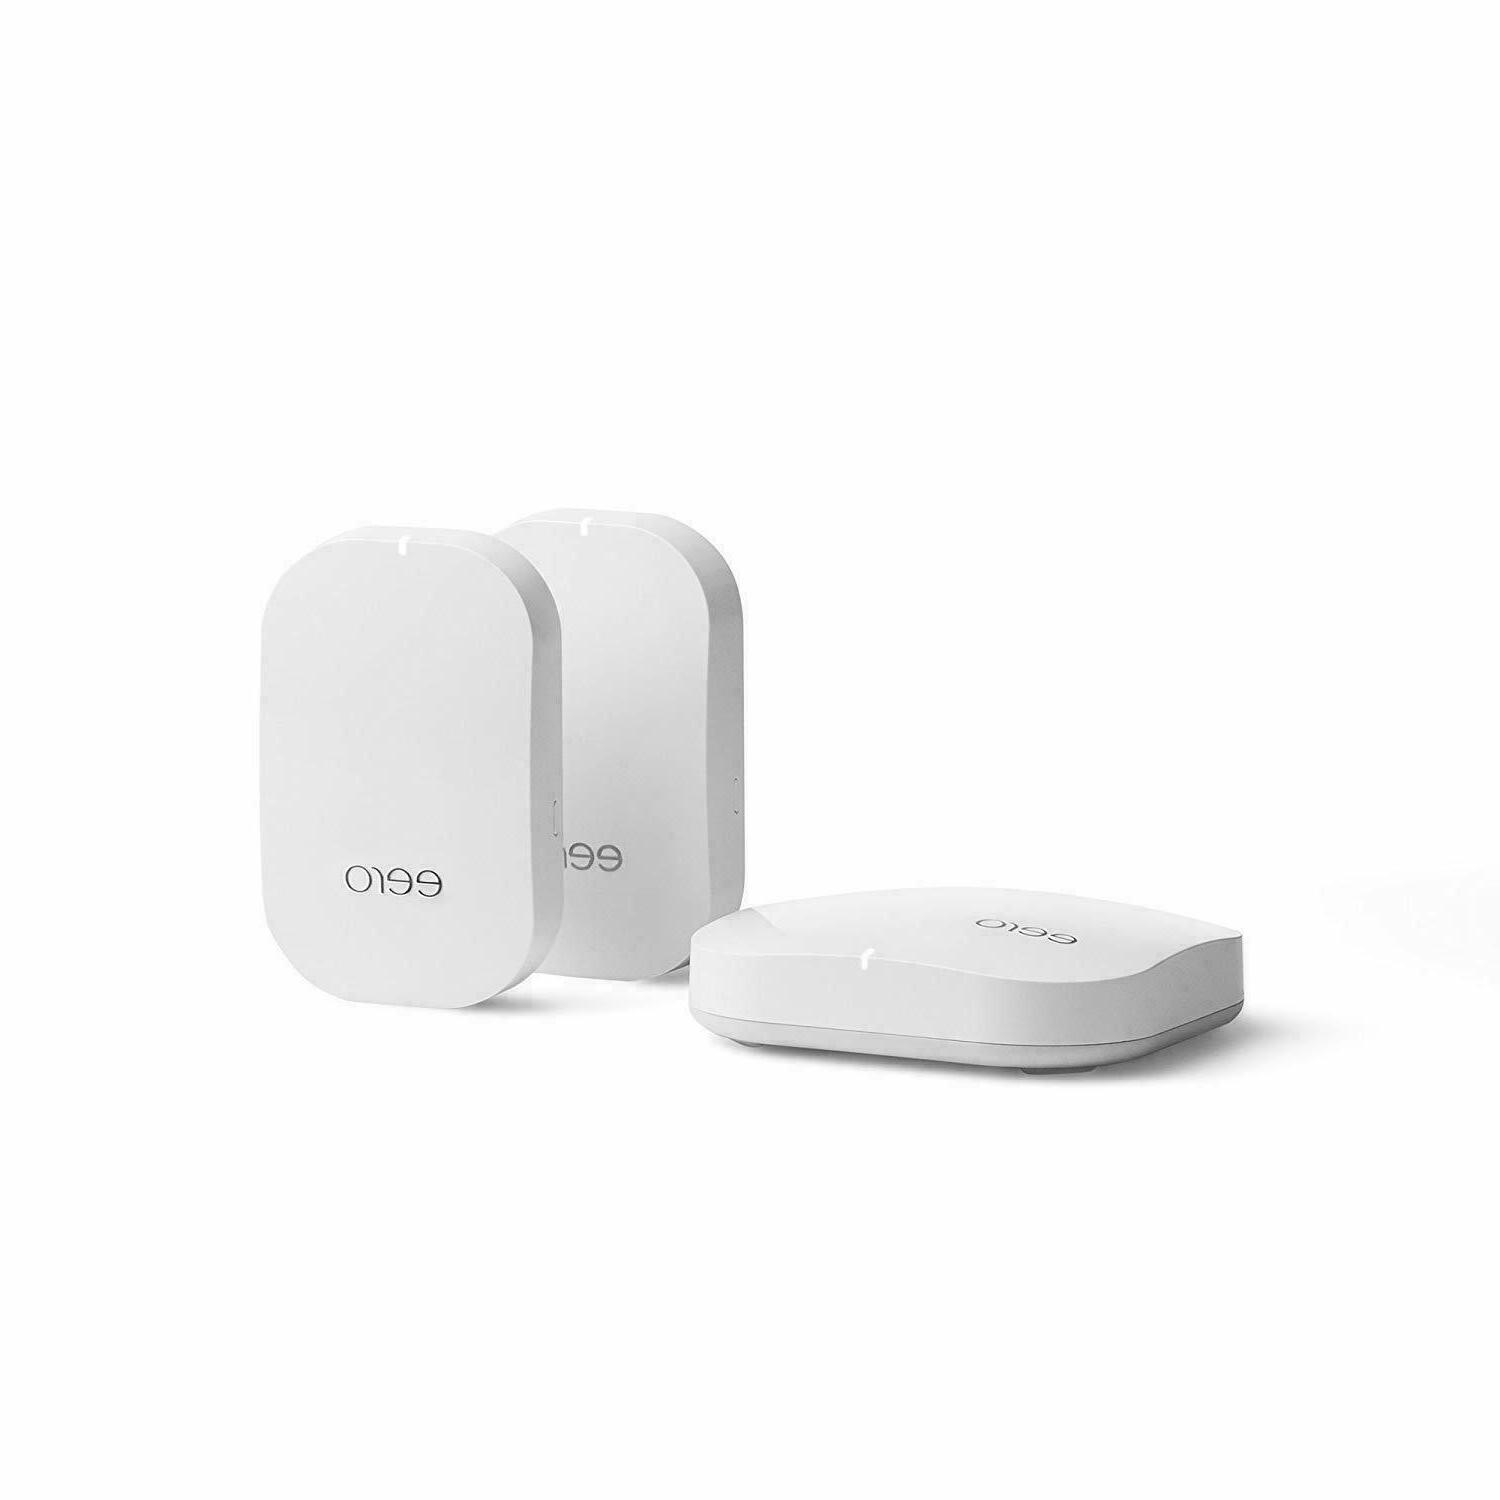 eero System Advanced Tri-Band Mesh System